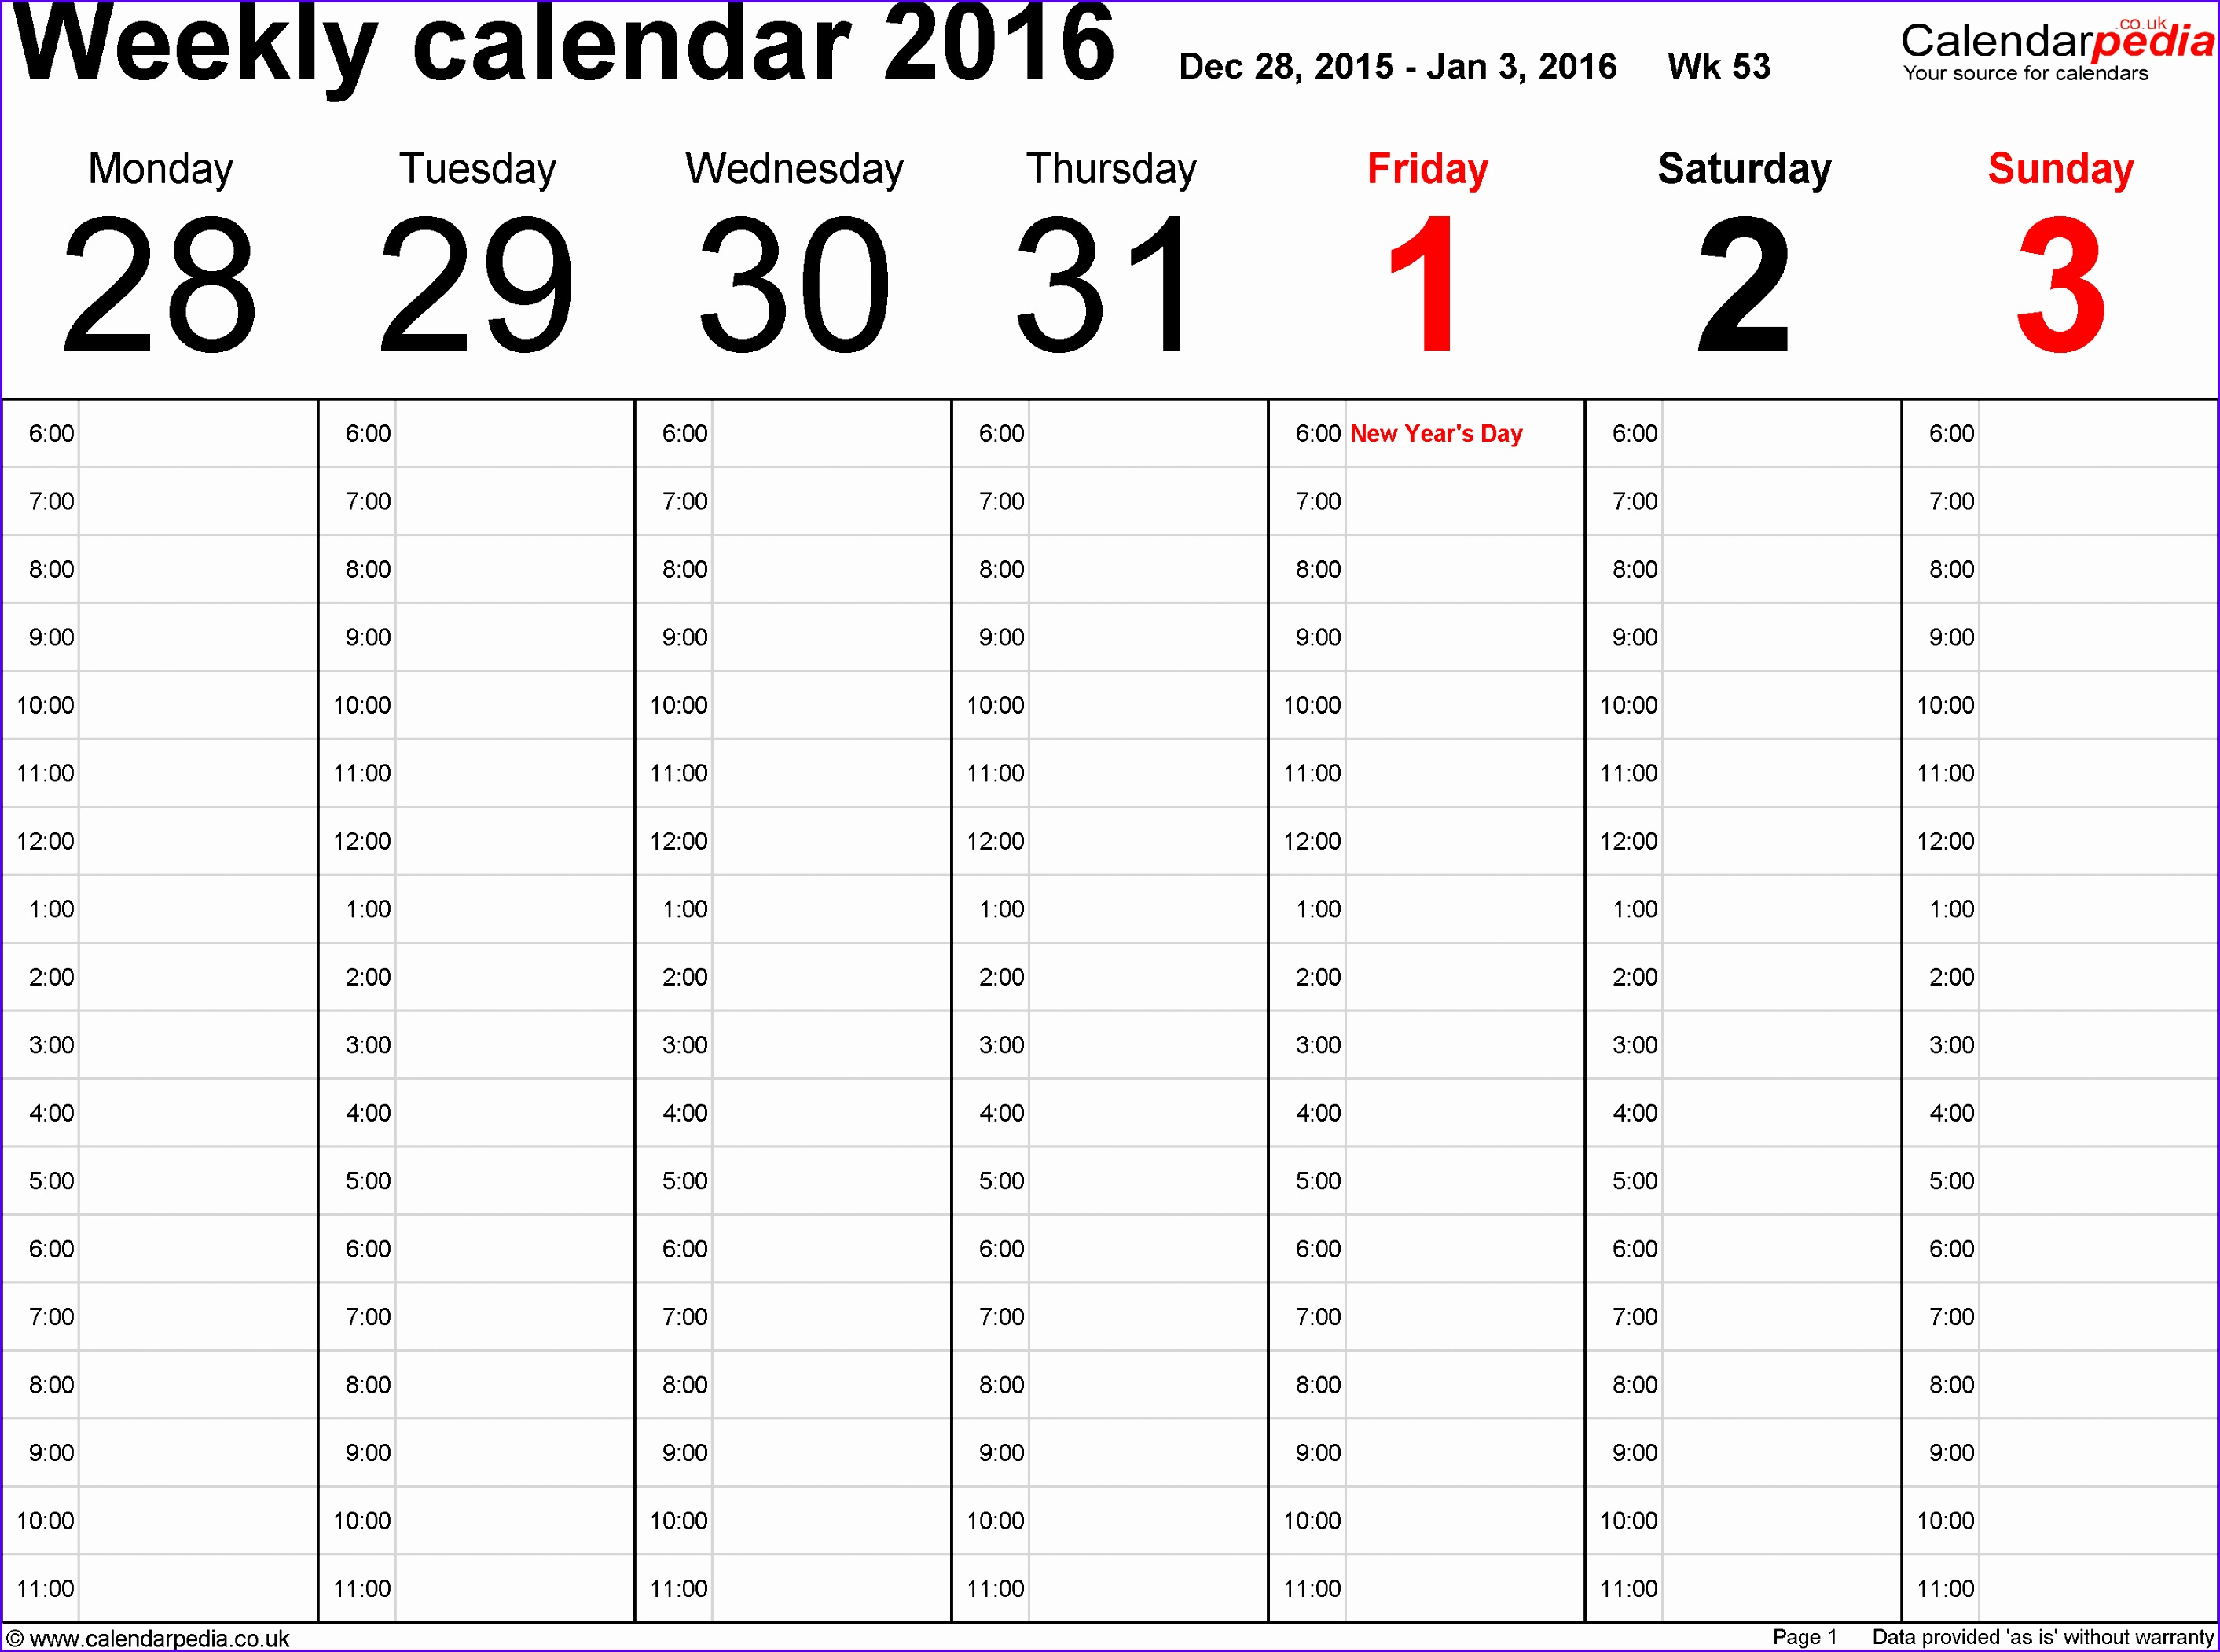 Excel template 1 Weekly calendar 2016 landscape orientation 53 pages 1 calendar 28252102